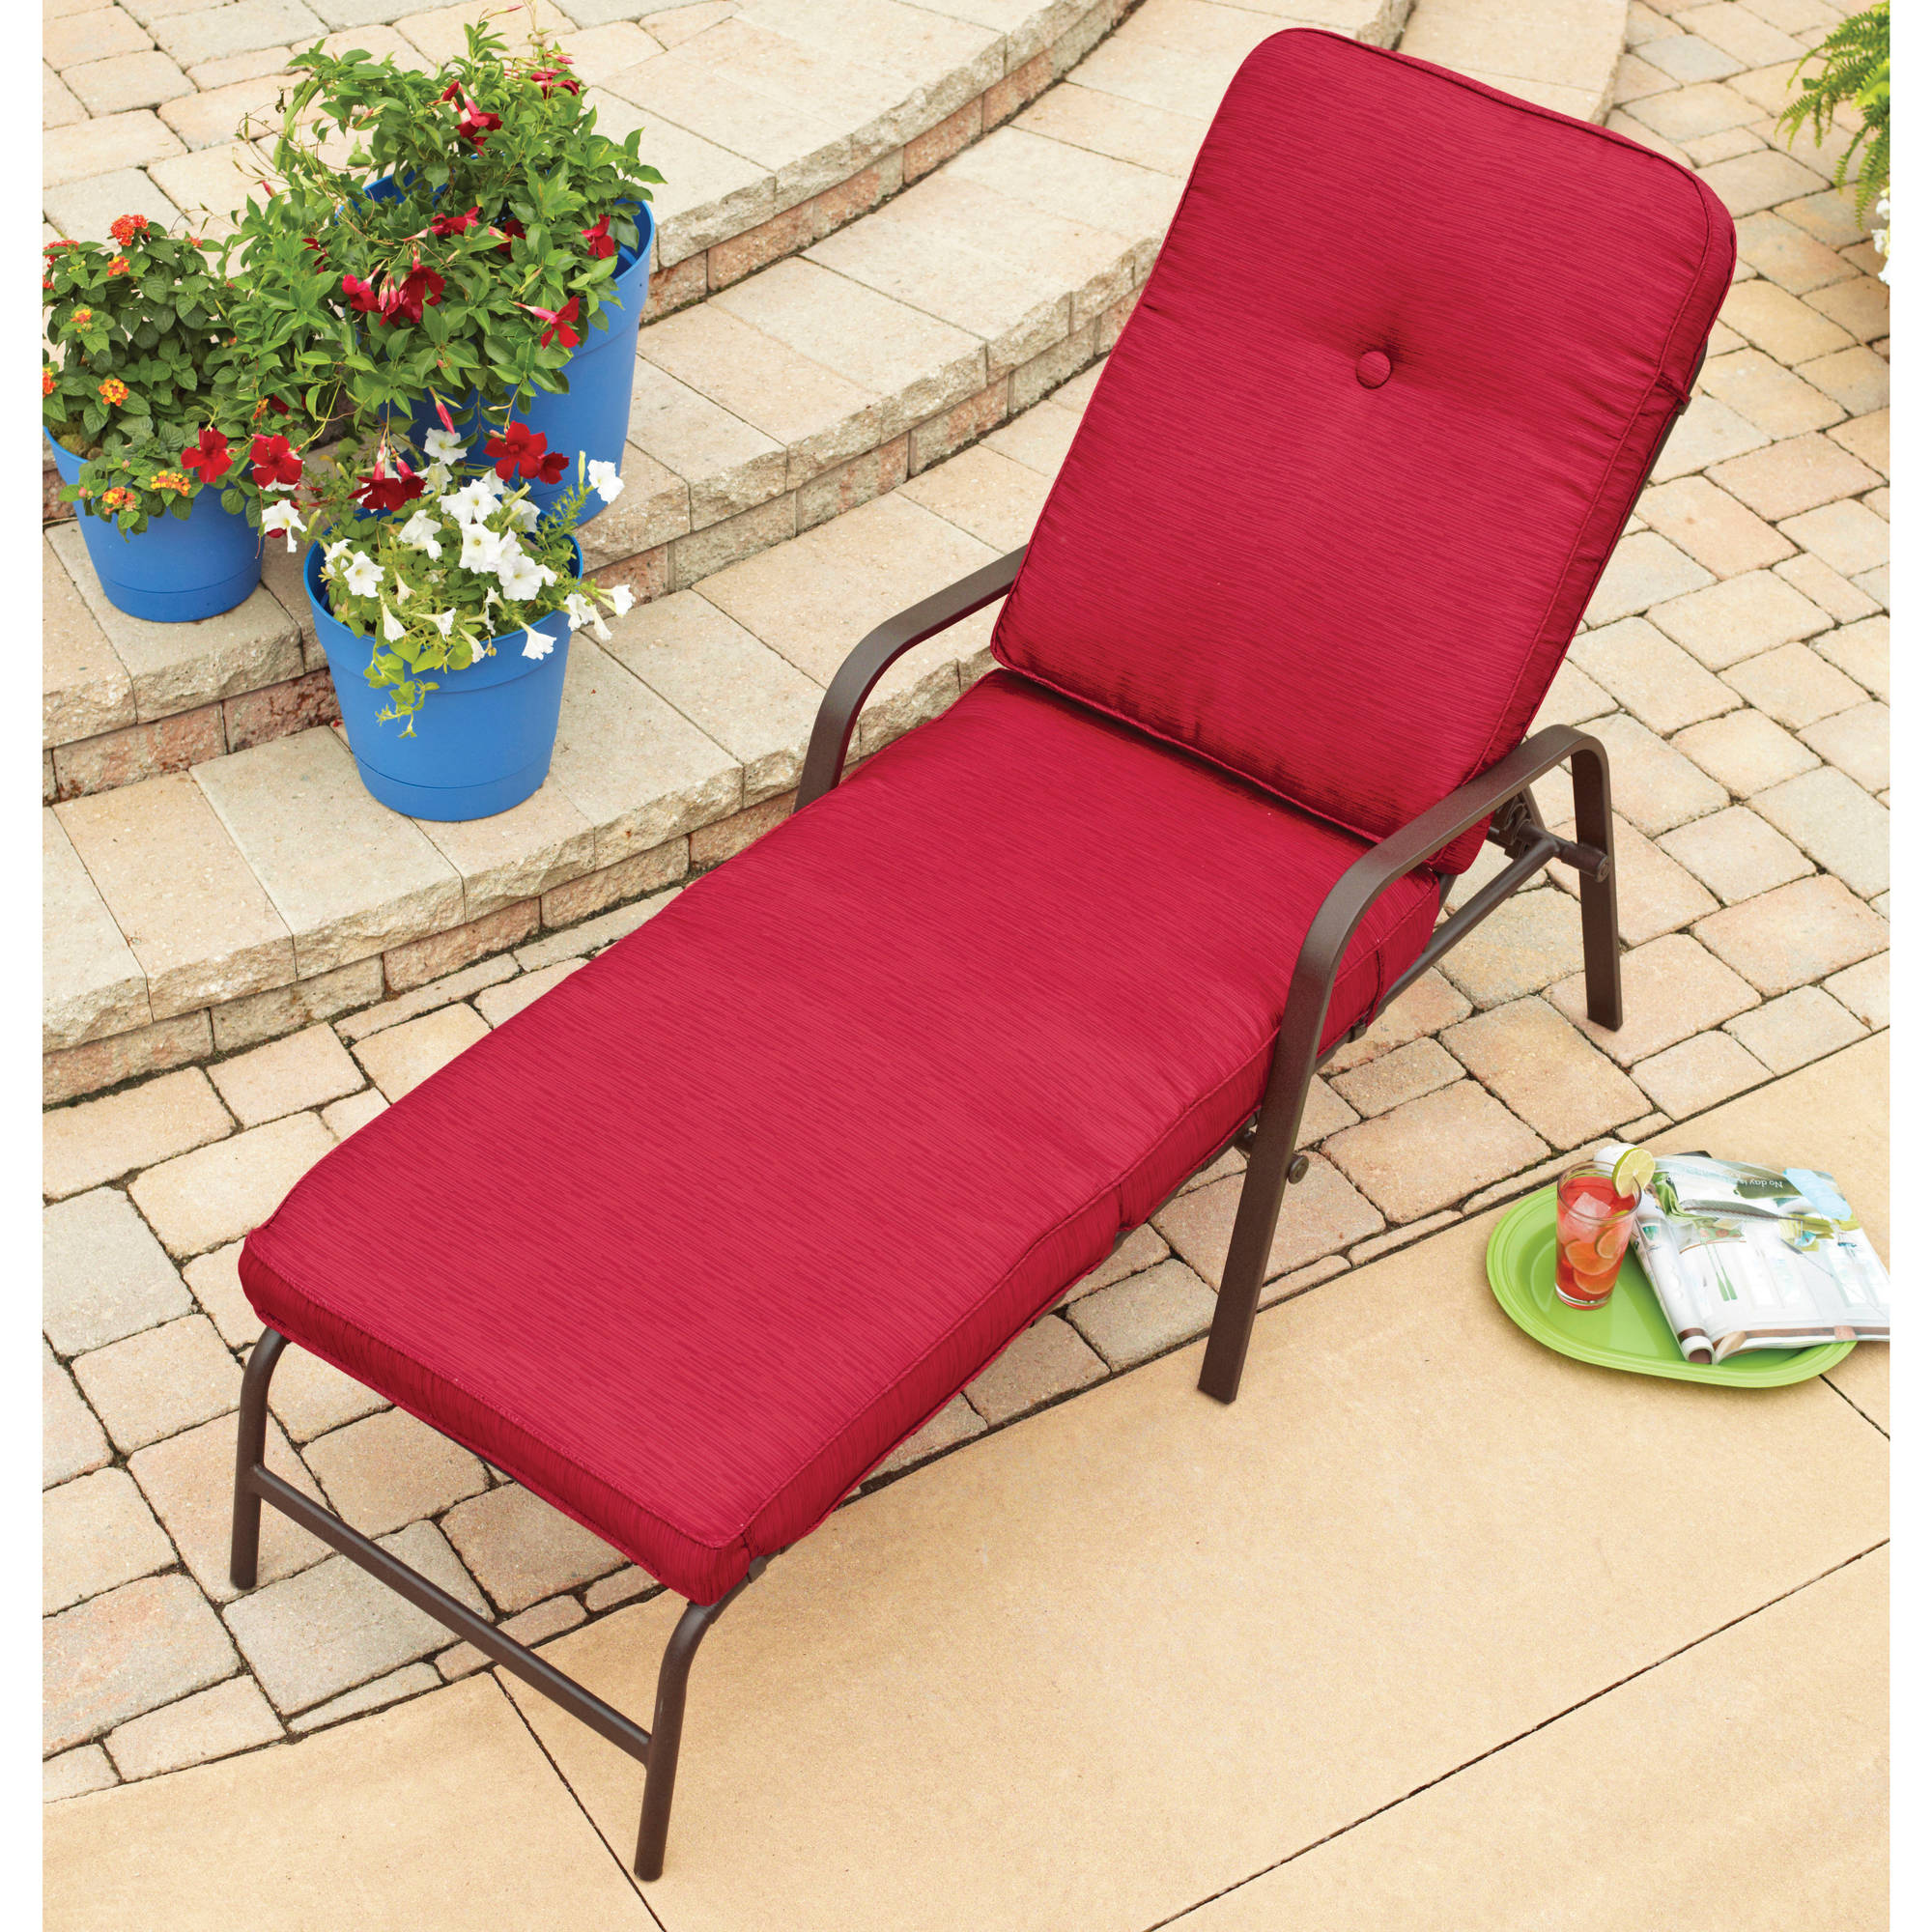 extra double inch cushions lounge wide outdoor chairs chair chaise